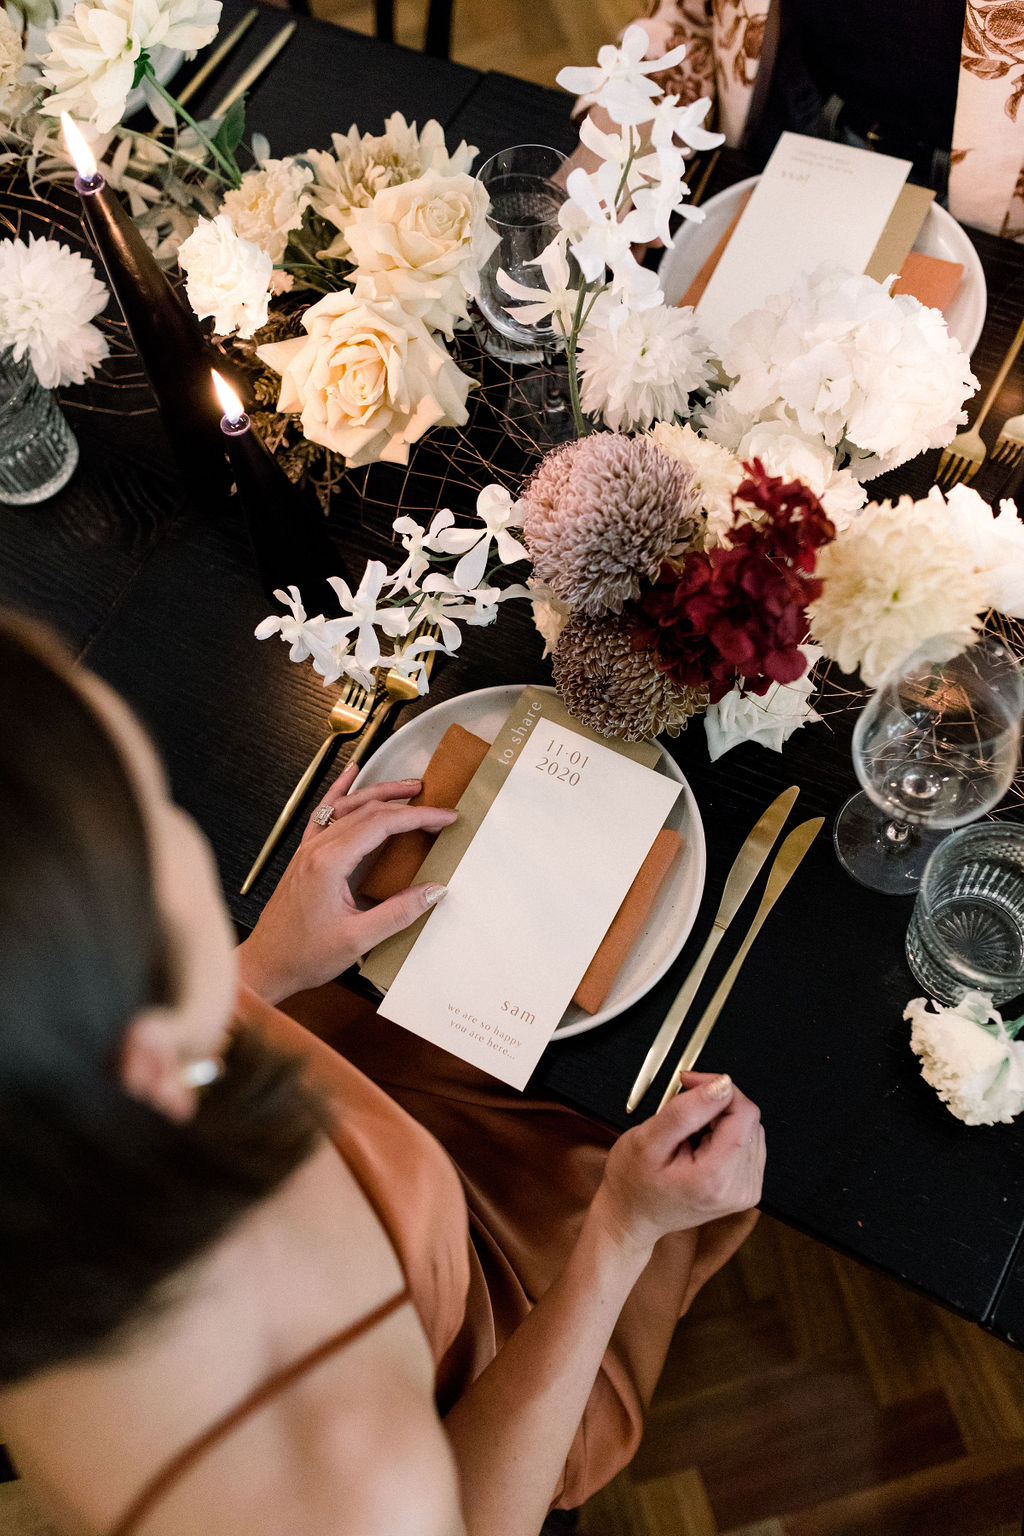 white+white weddings and events the wedding school styled shoot isles lane tablescape table styling floral arrangement candid